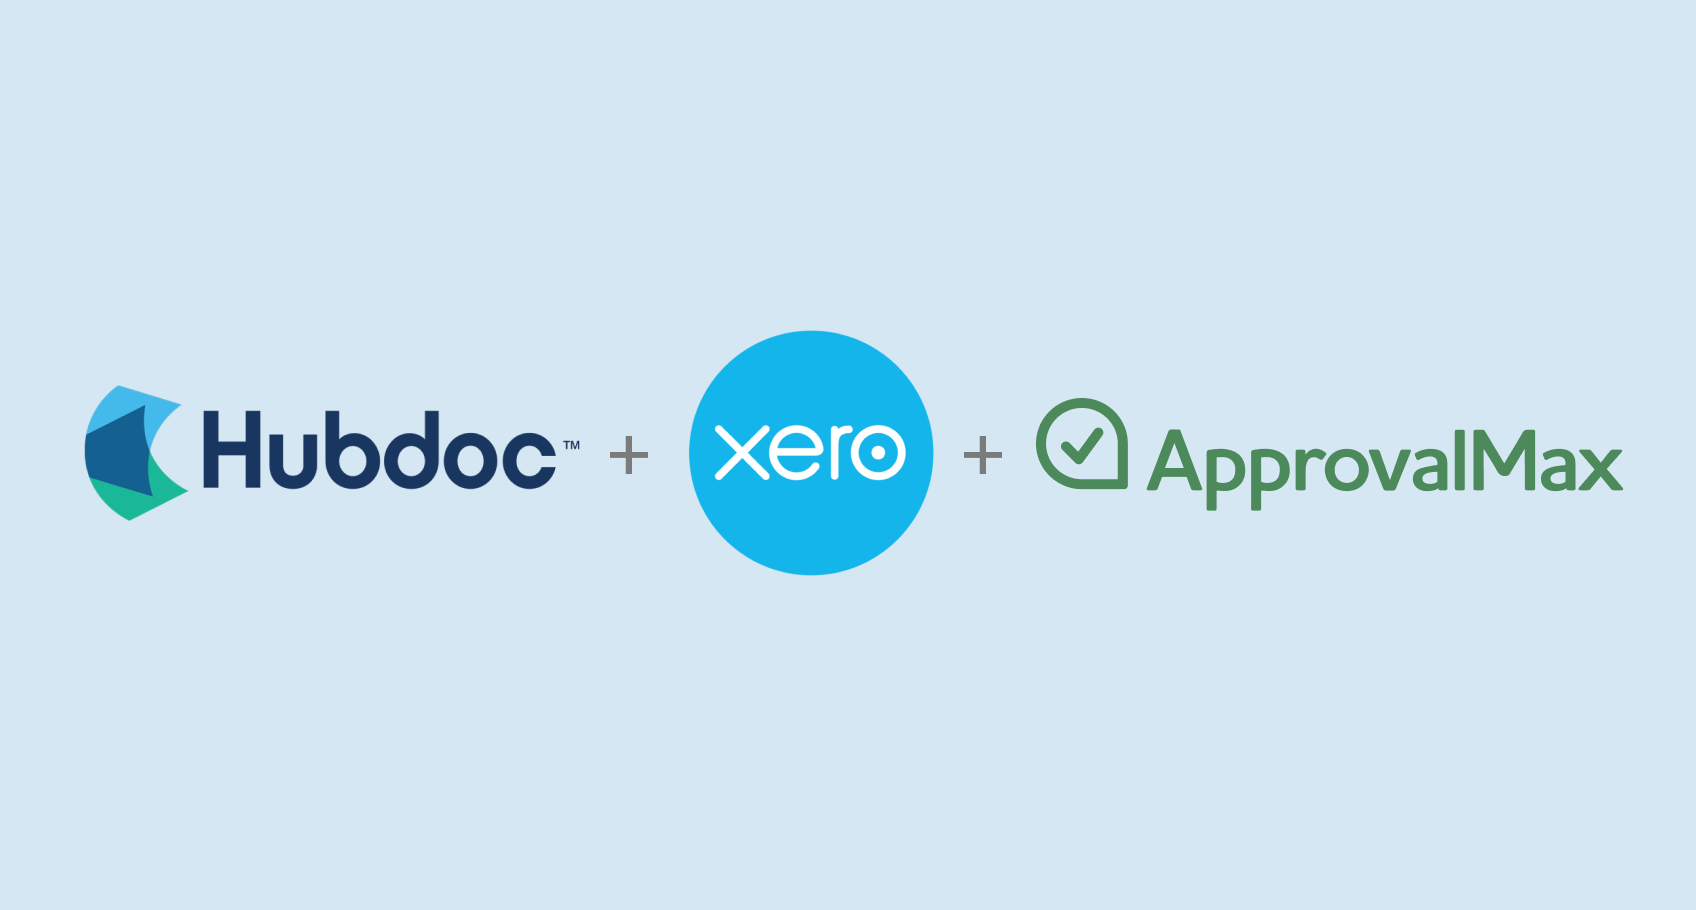 Hubdoc and ApprovalMax are now connected via Xero